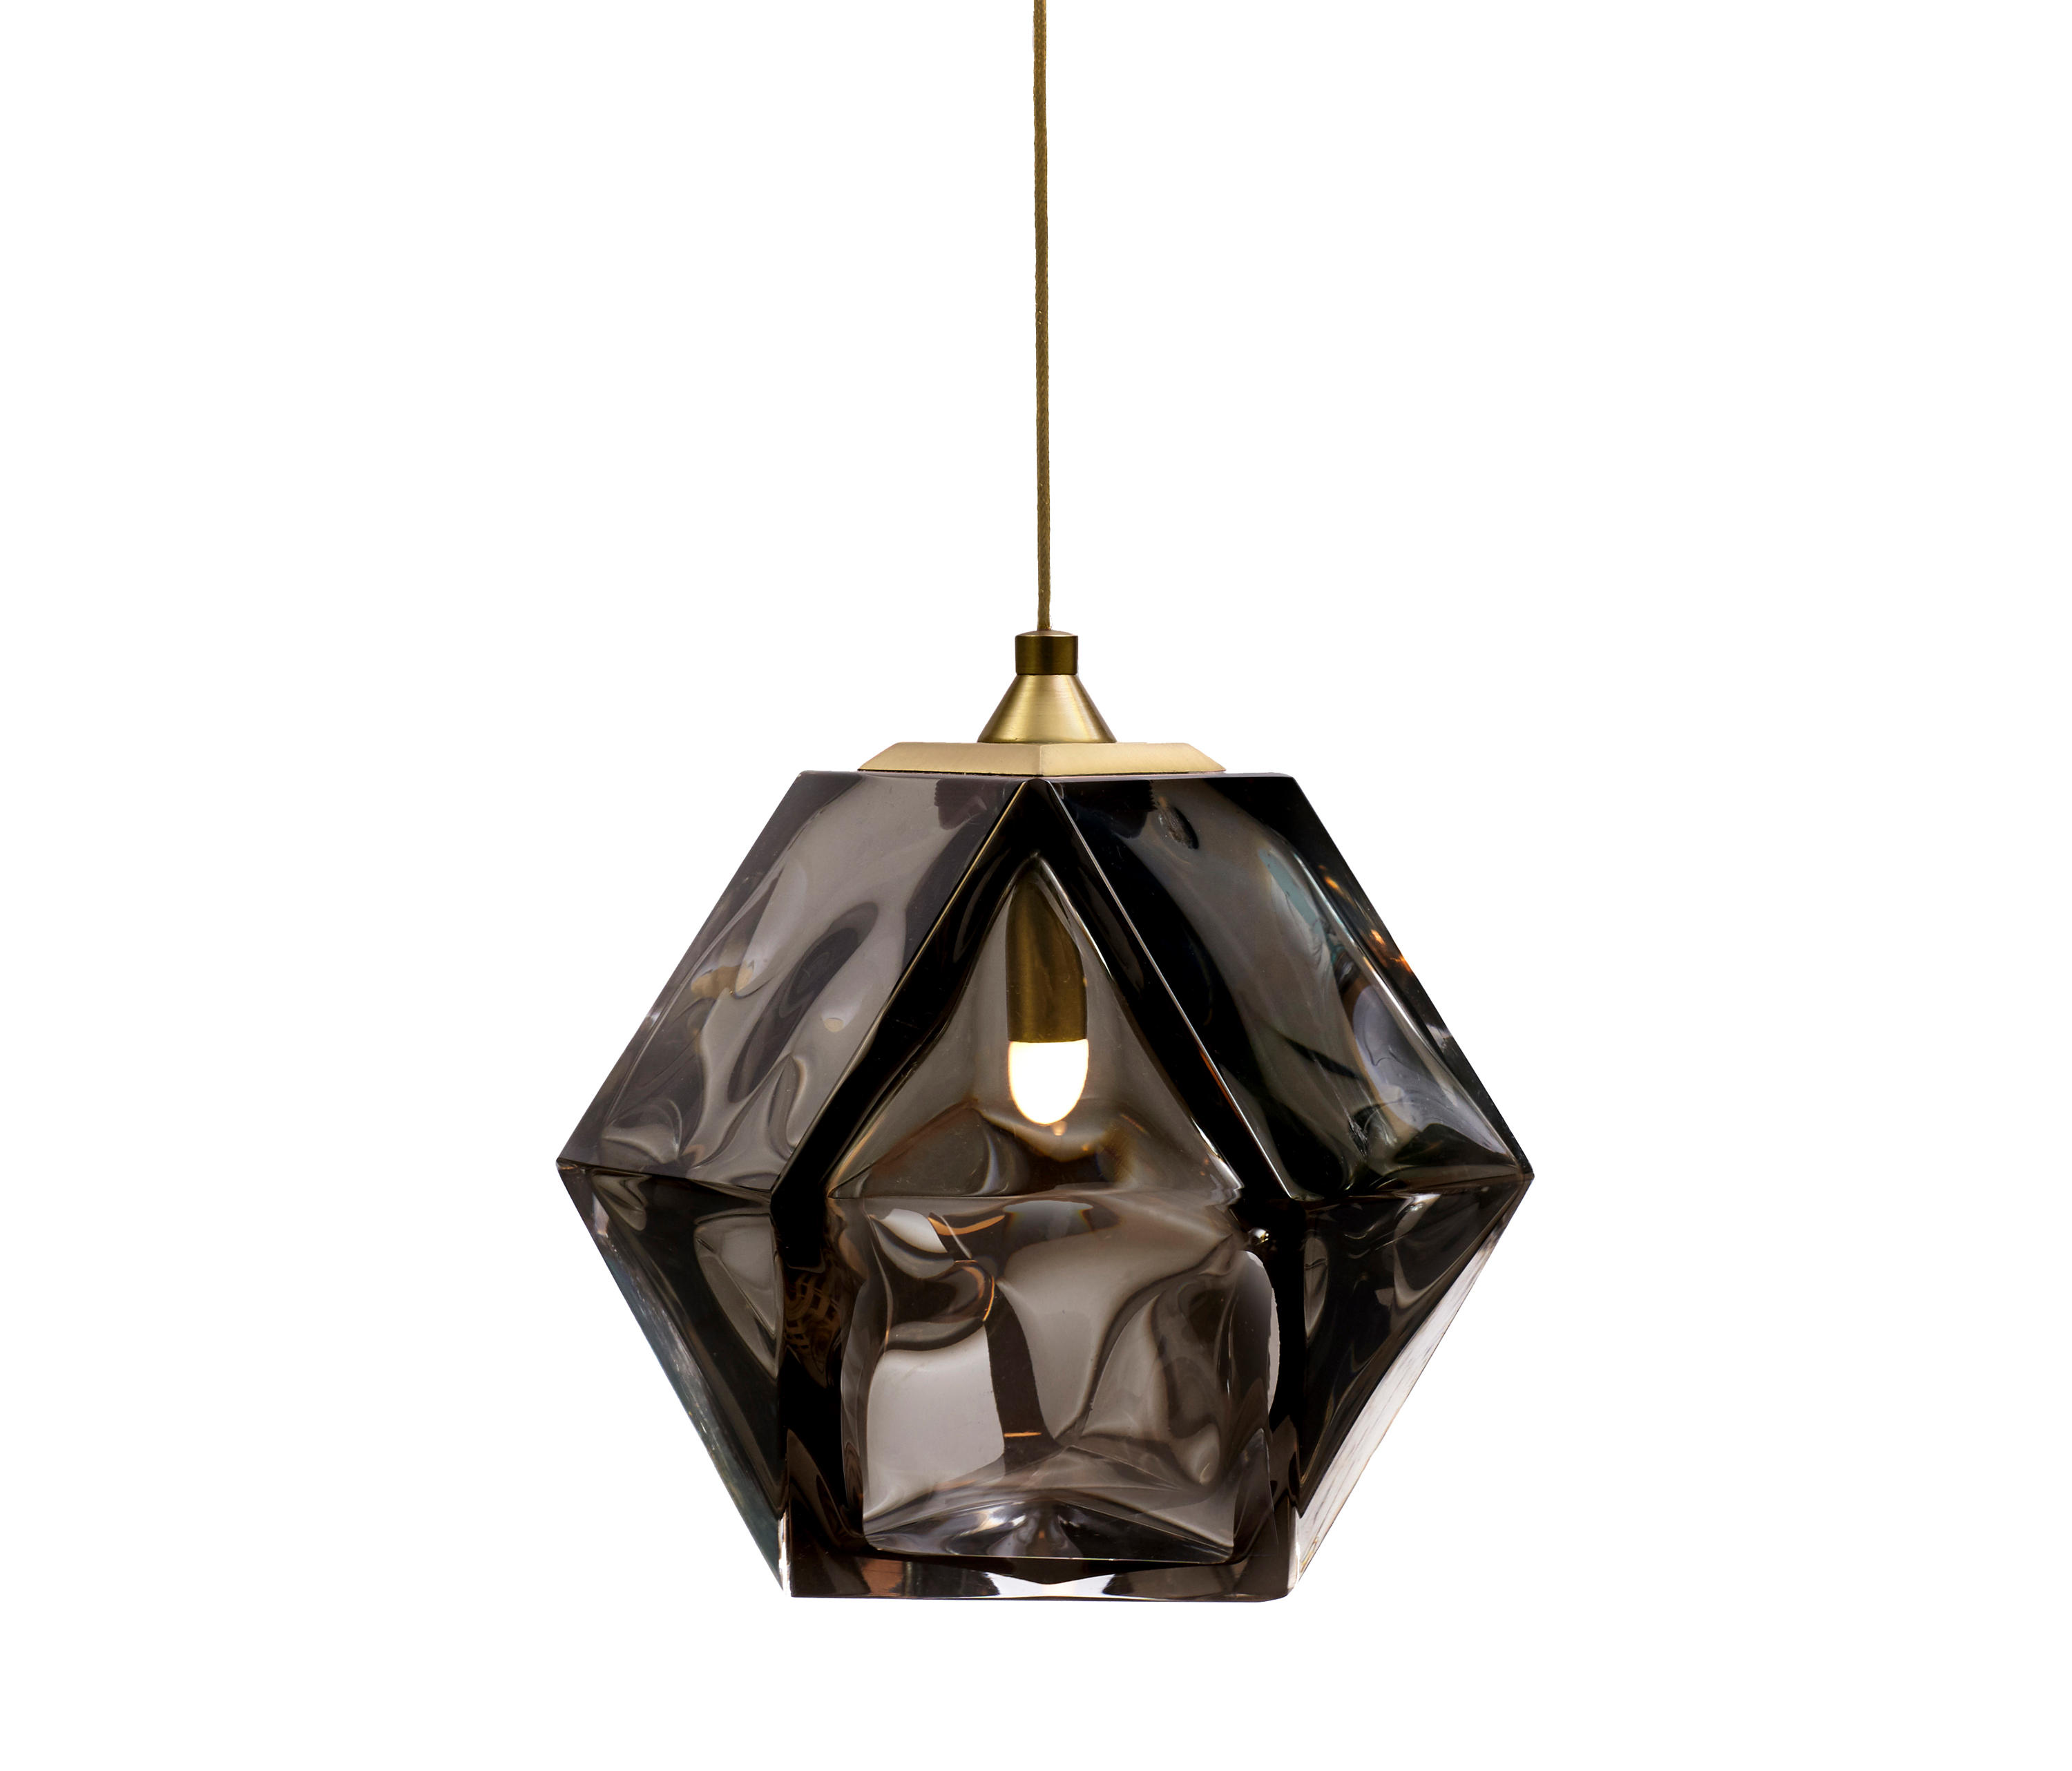 en lighting pendant smoked scott glass brass general welles gabriel b blown from product by double